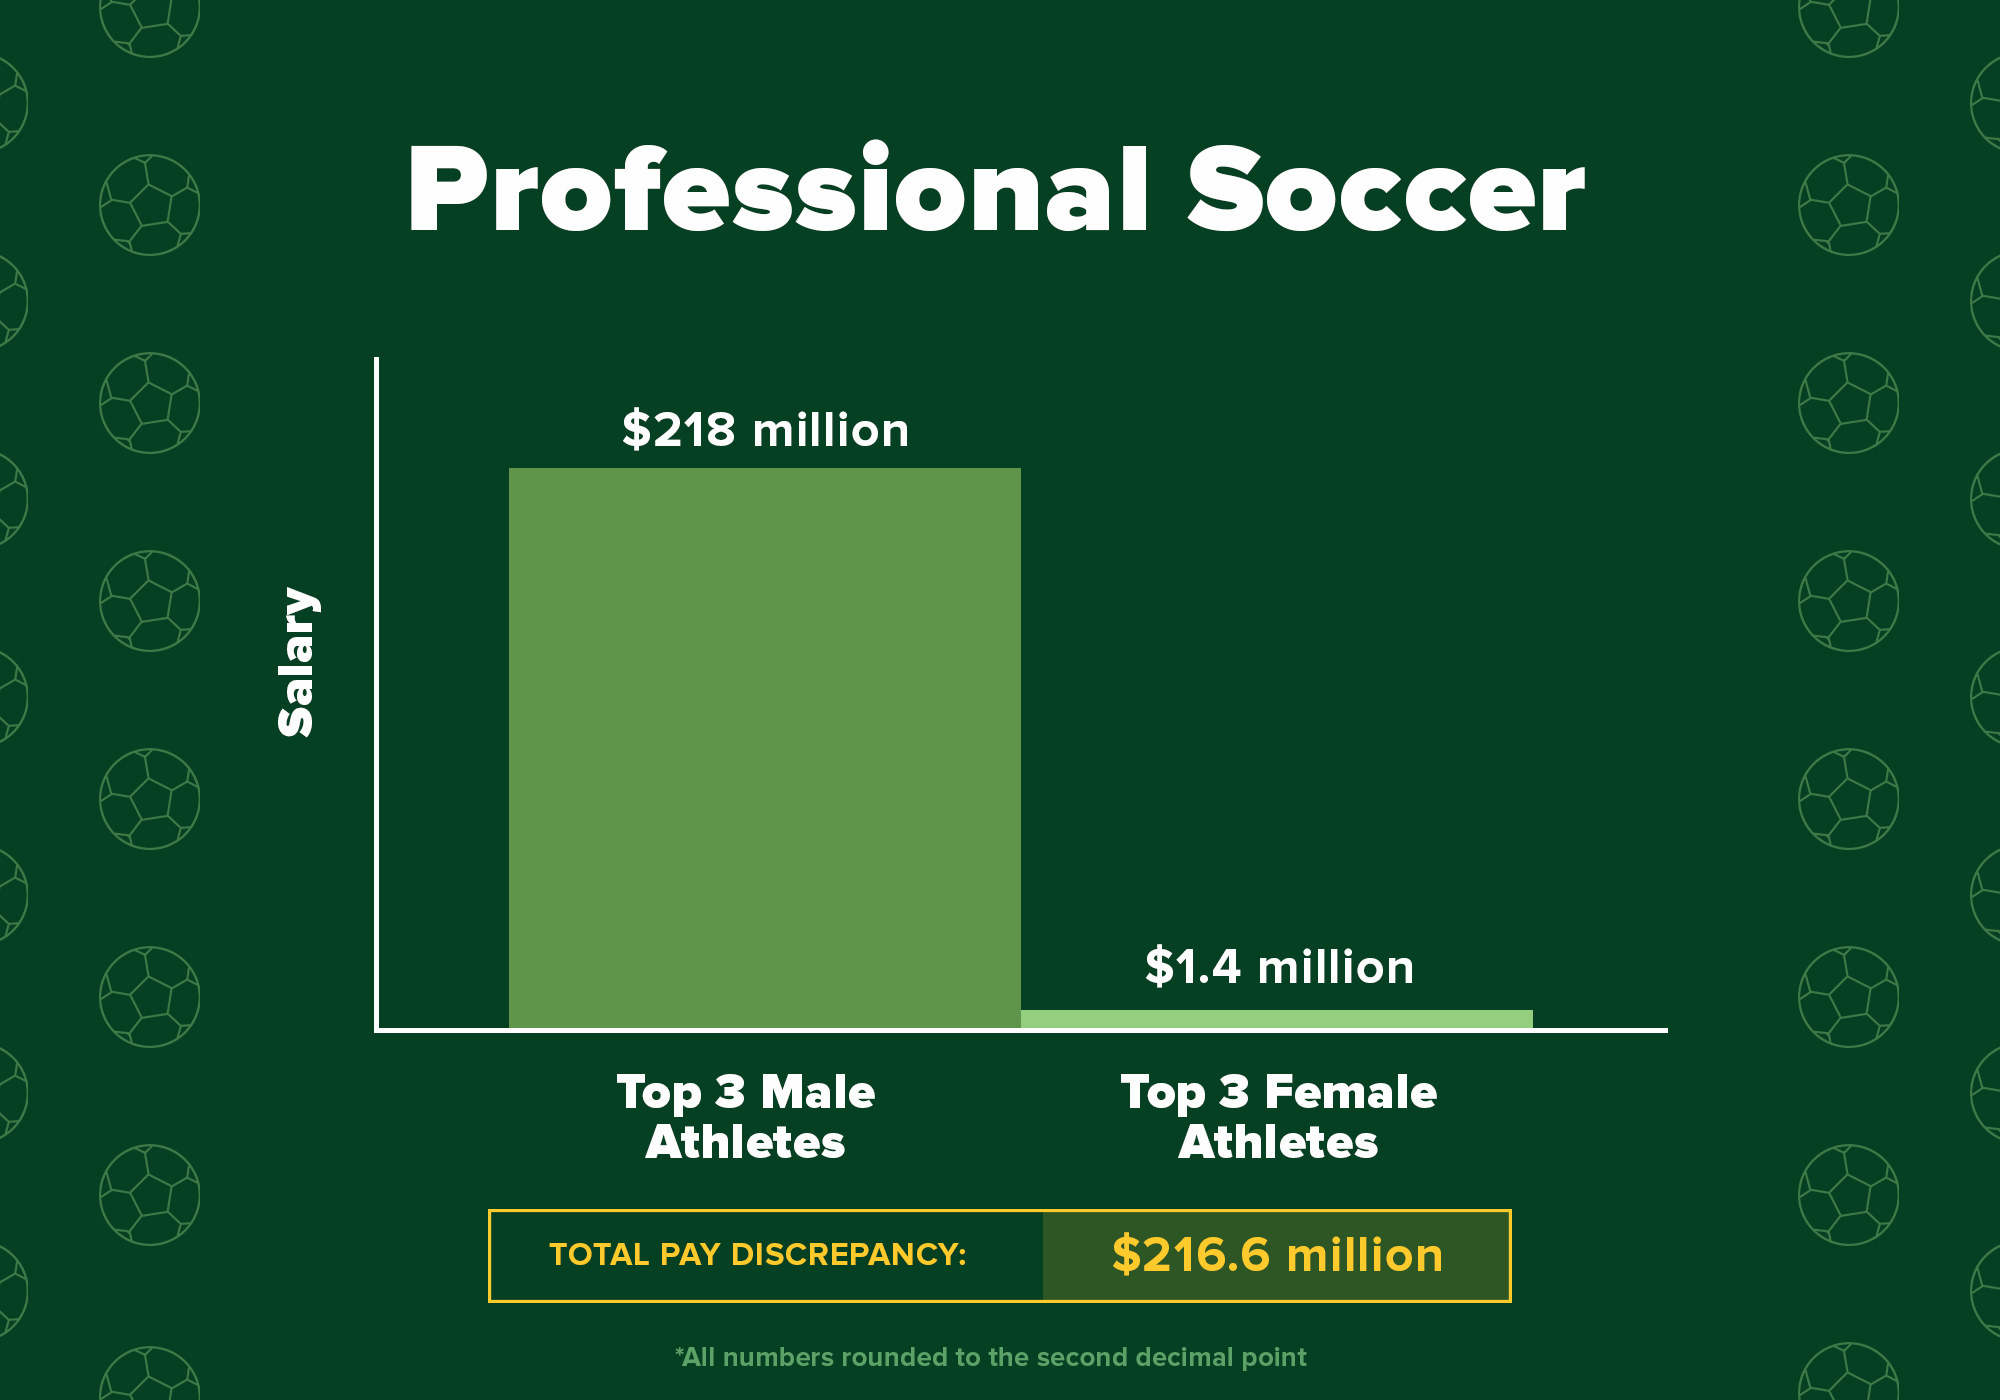 Chart showing that the total pay disparity between these 6 soccer athletes is $126.6 million